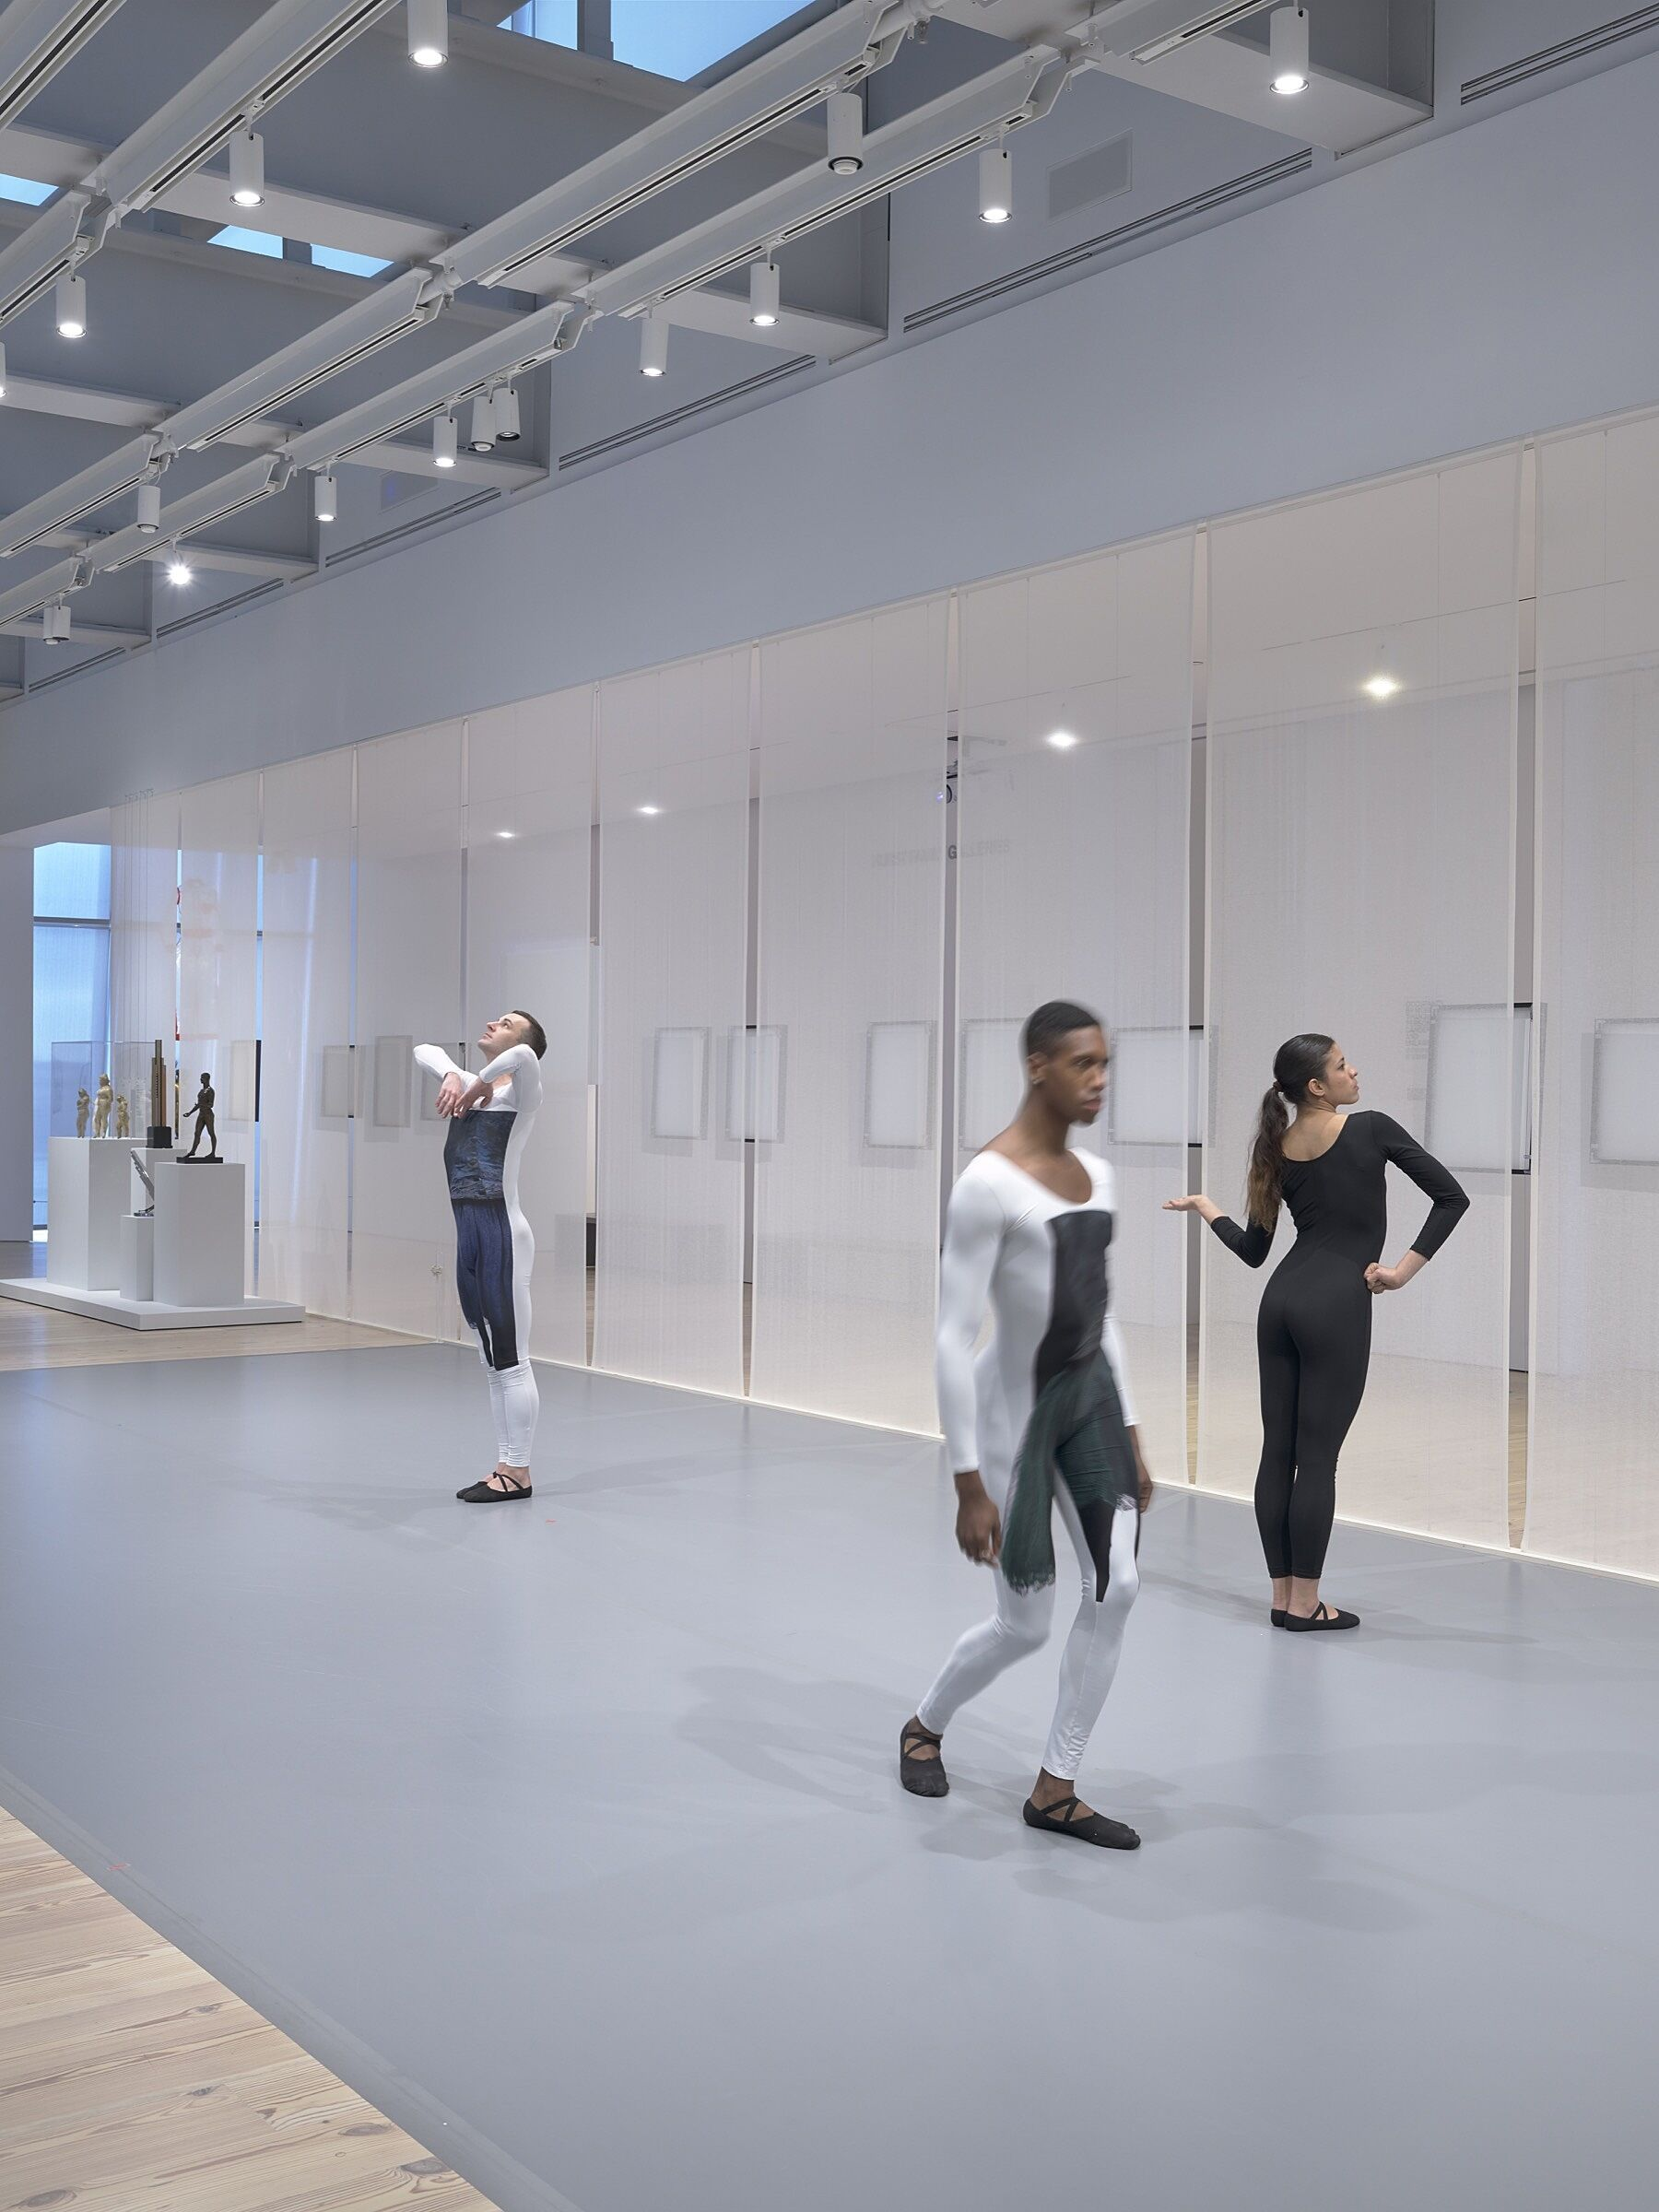 Three dancers perform in a gallery space full of photos and sculptures.